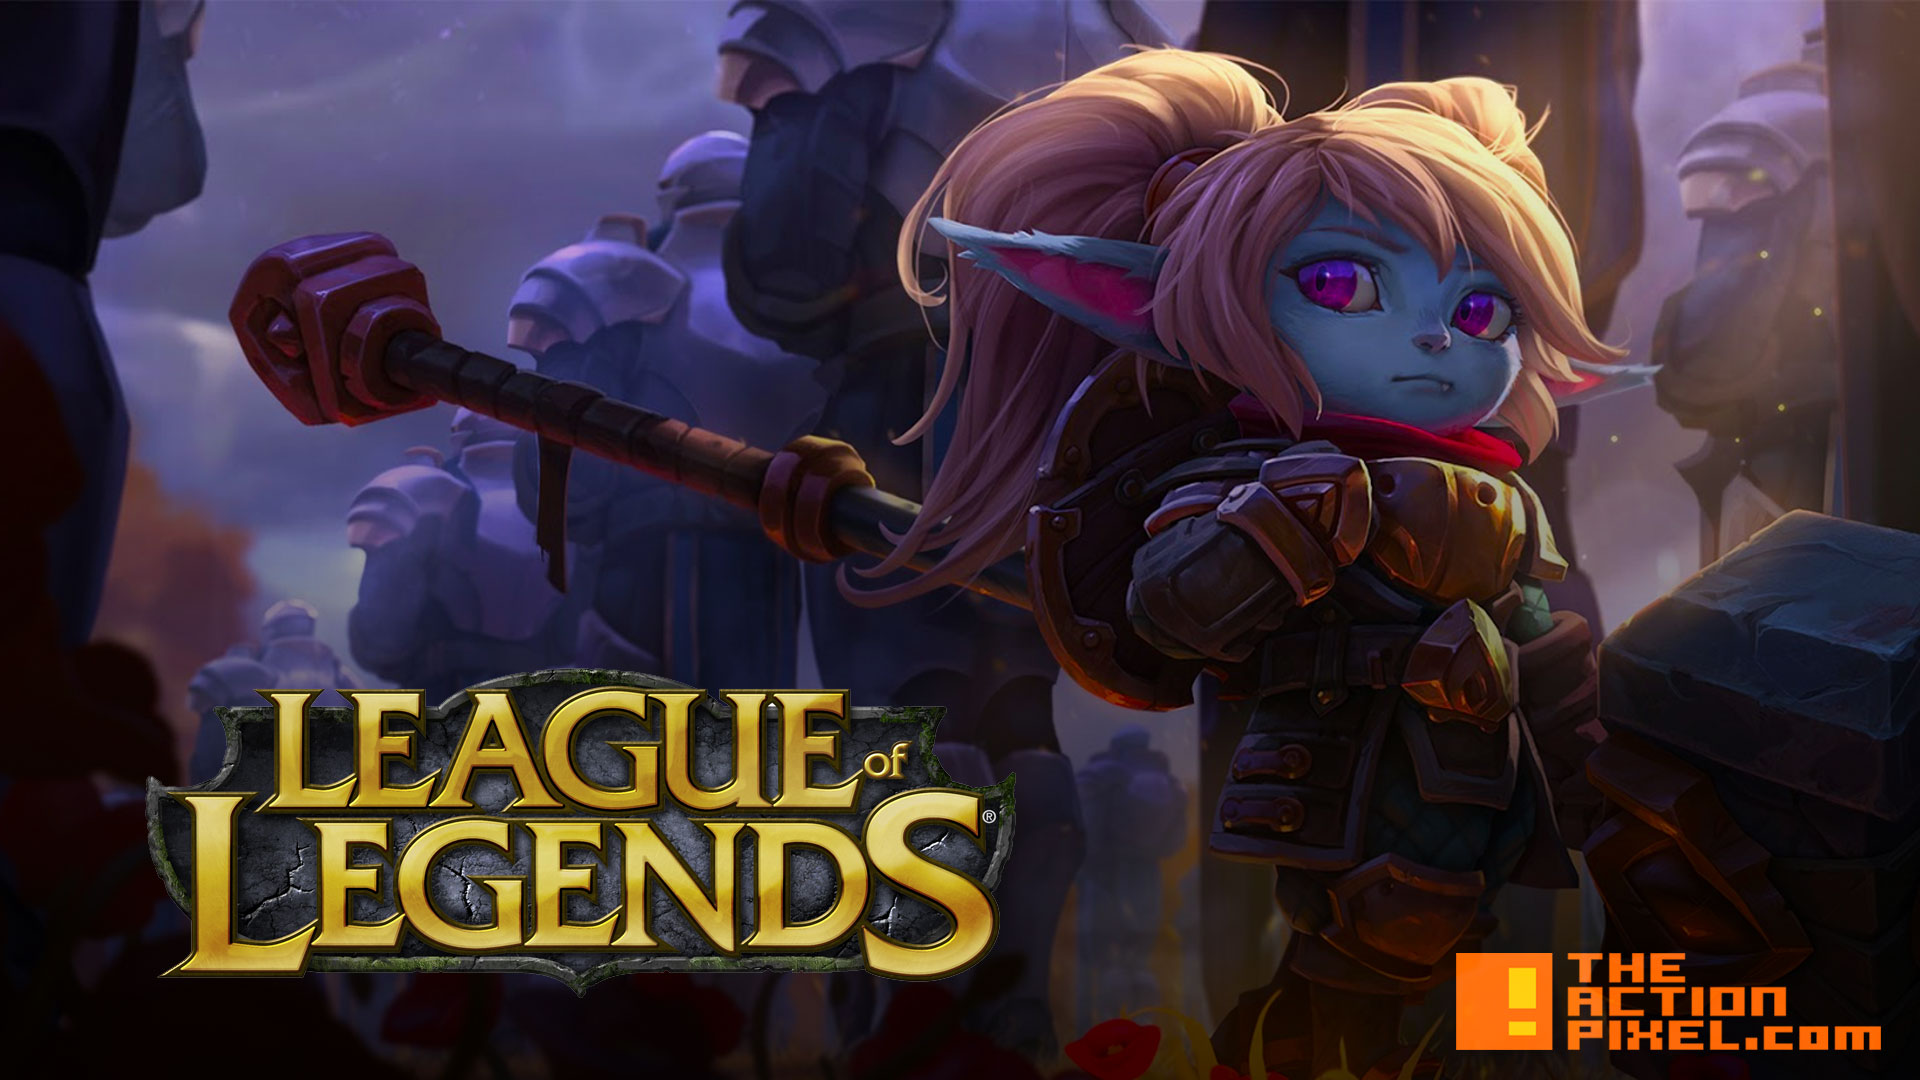 league of legends. poppy. the action pixel. entertainment on tap. riot. @theactionpixel. league of legends